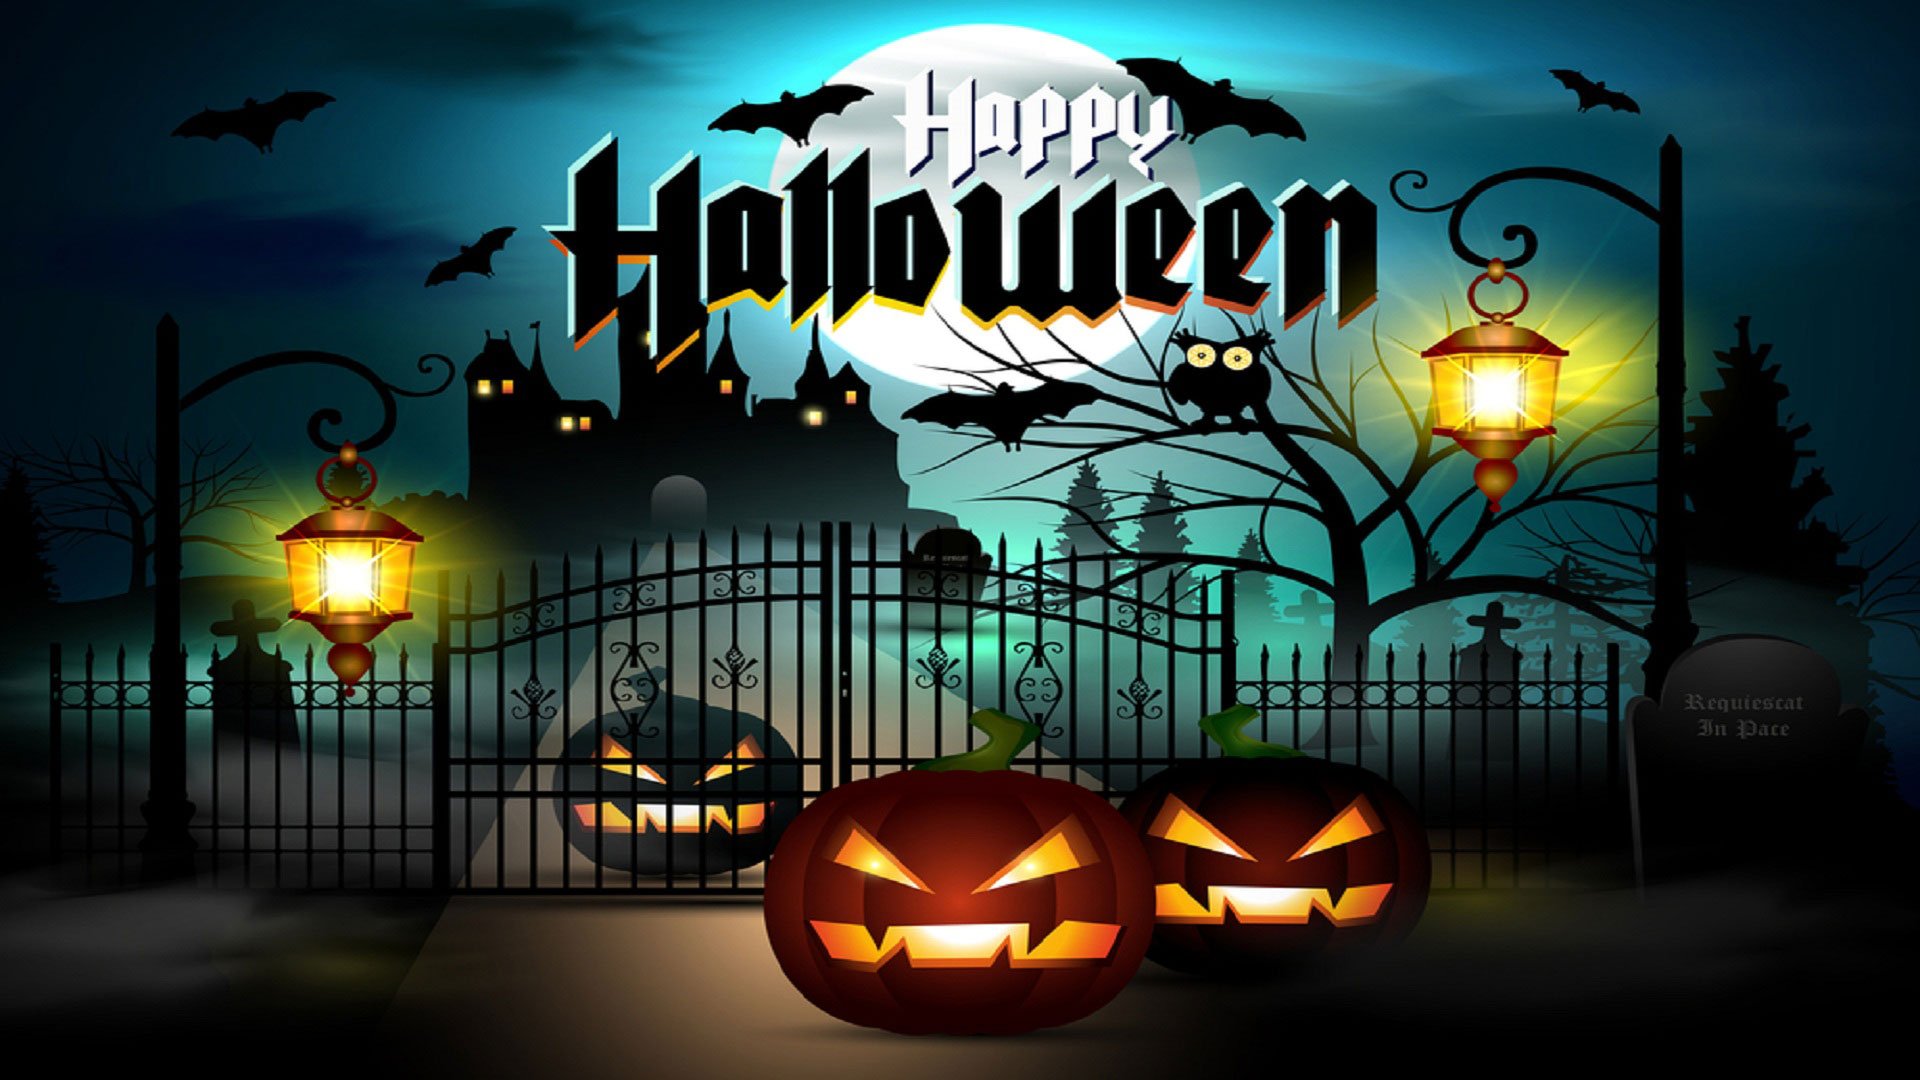 25 Scary Halloween 2017 HD Wallpapers Backgrounds 1920x1080